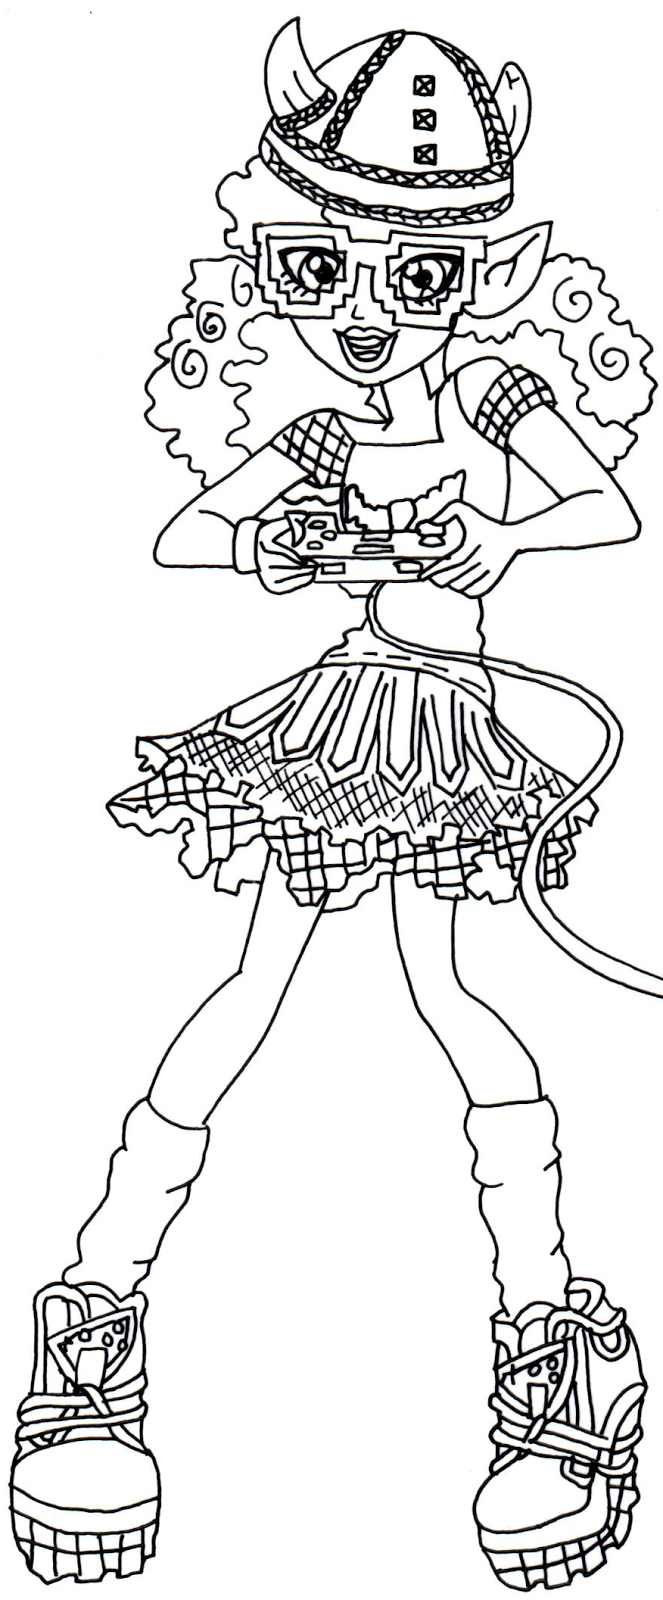 Free Printable Monster High Coloring Pages Kjersti